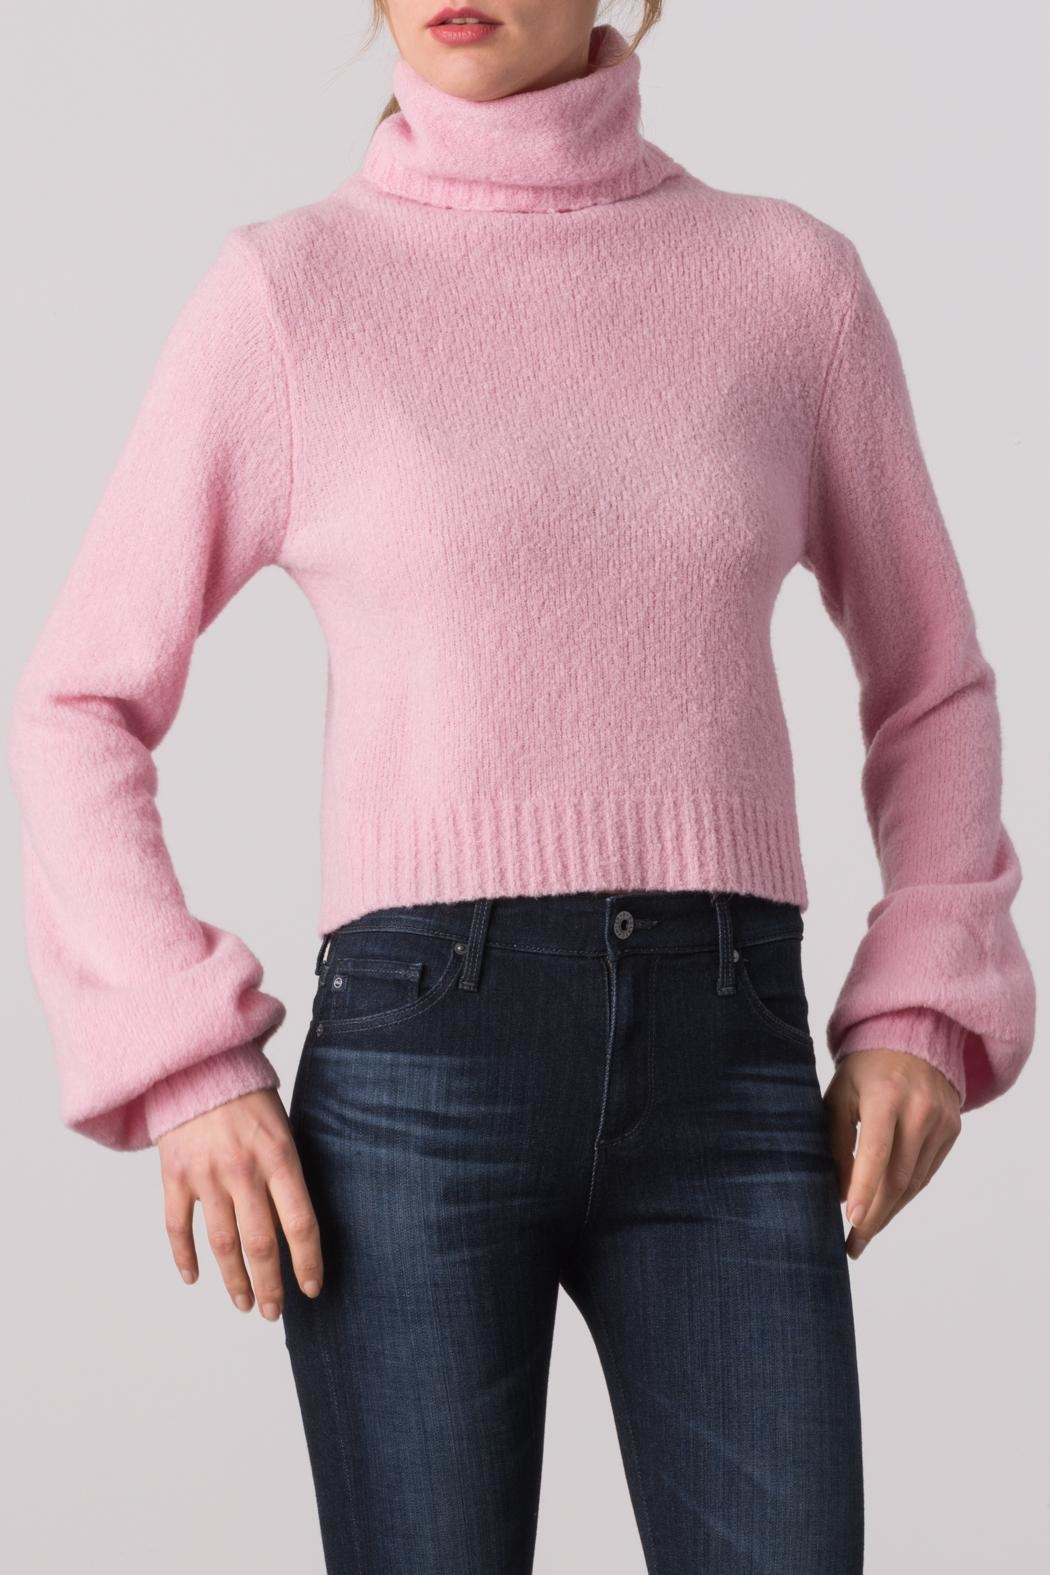 Margaret O'Leary Tara Turtleneck Sweater - Main Image